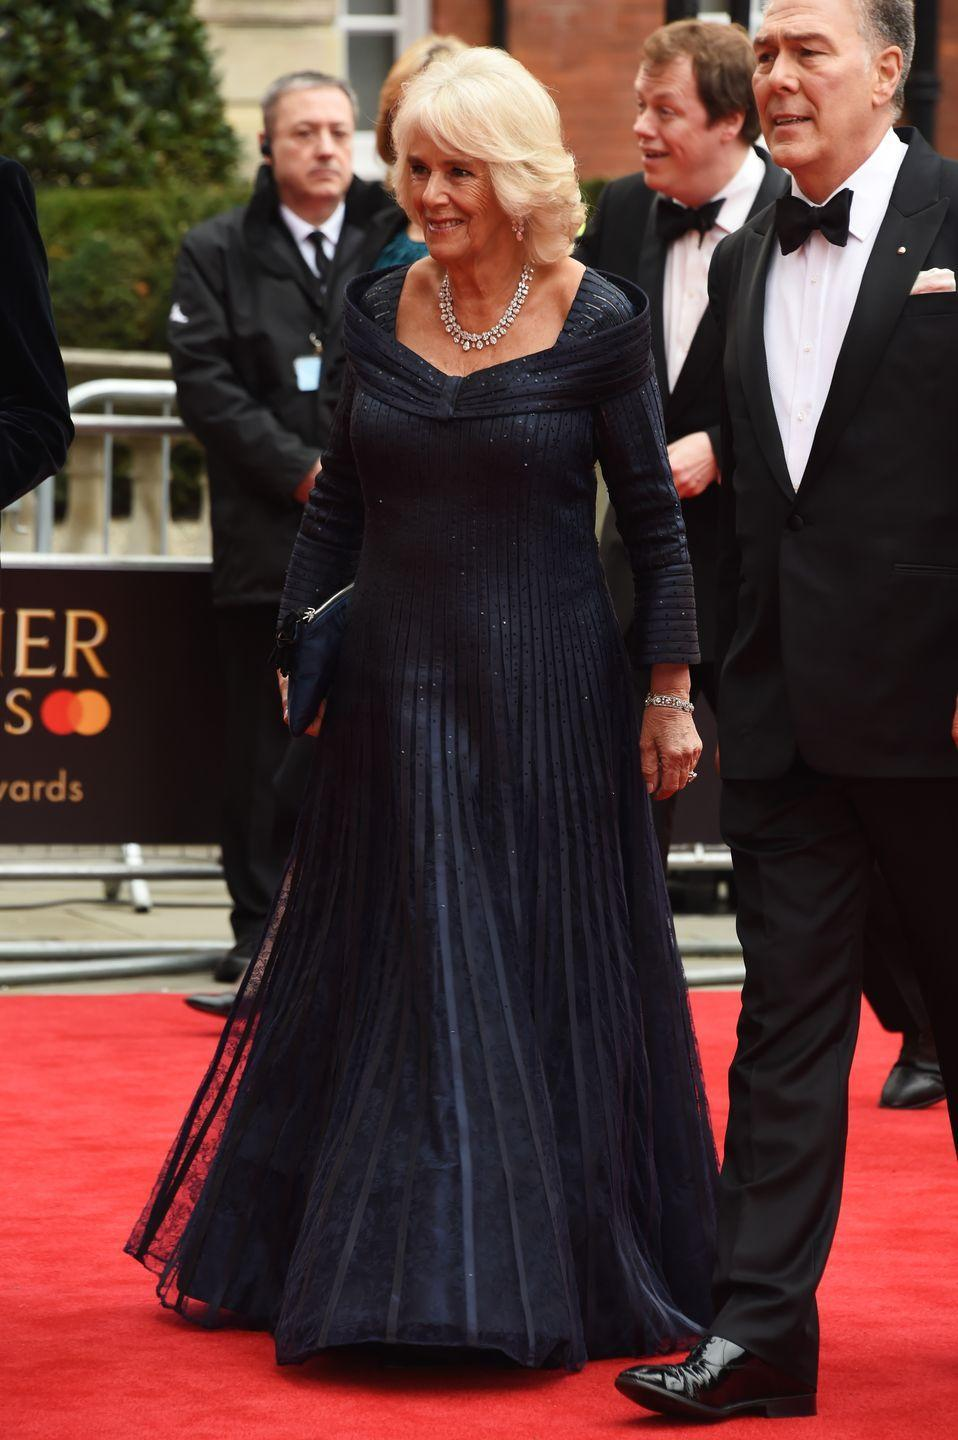 """<p>Camilla arrived at the 2019 Olivier Awards re-wearing the sparkly navy gown, diamond statement necklace, and diamond earrings that she originally wore to <a href=""""https://www.townandcountrymag.com/society/tradition/g25058013/prince-charles-70th-birthday-party-photos/"""" rel=""""nofollow noopener"""" target=""""_blank"""" data-ylk=""""slk:Prince Charles's 70th birthday party."""" class=""""link rapid-noclick-resp"""">Prince Charles's 70th birthday party. </a></p>"""